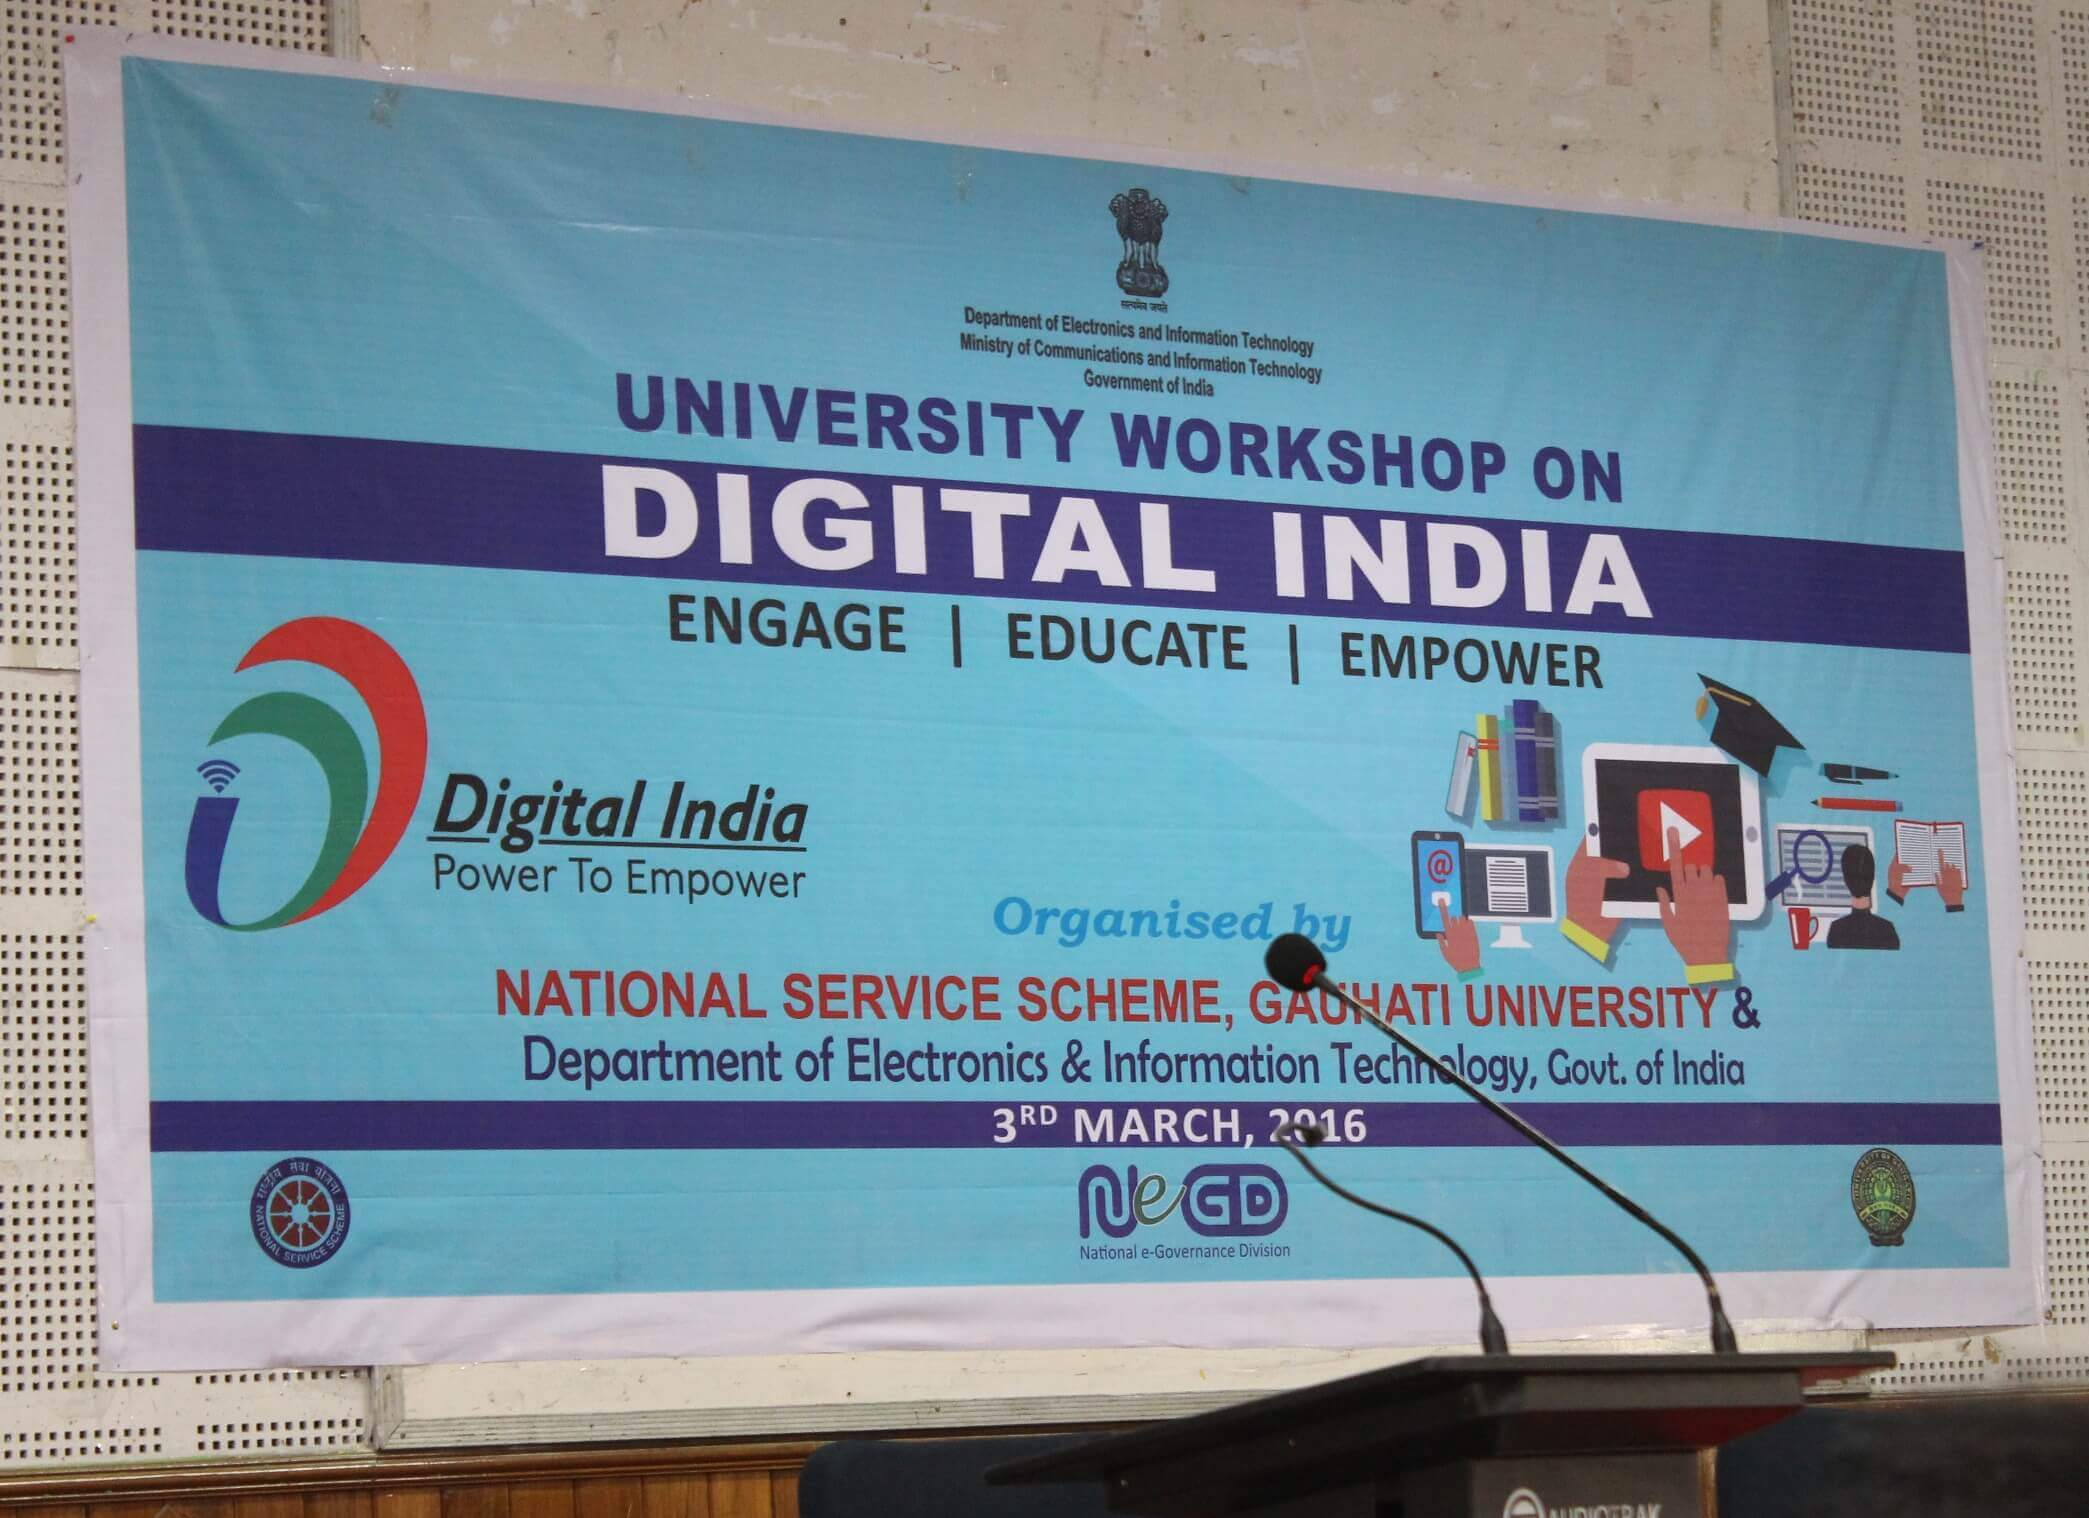 To inspire at least 5 new persons to become Digital India Volunteers(DigiSevak)